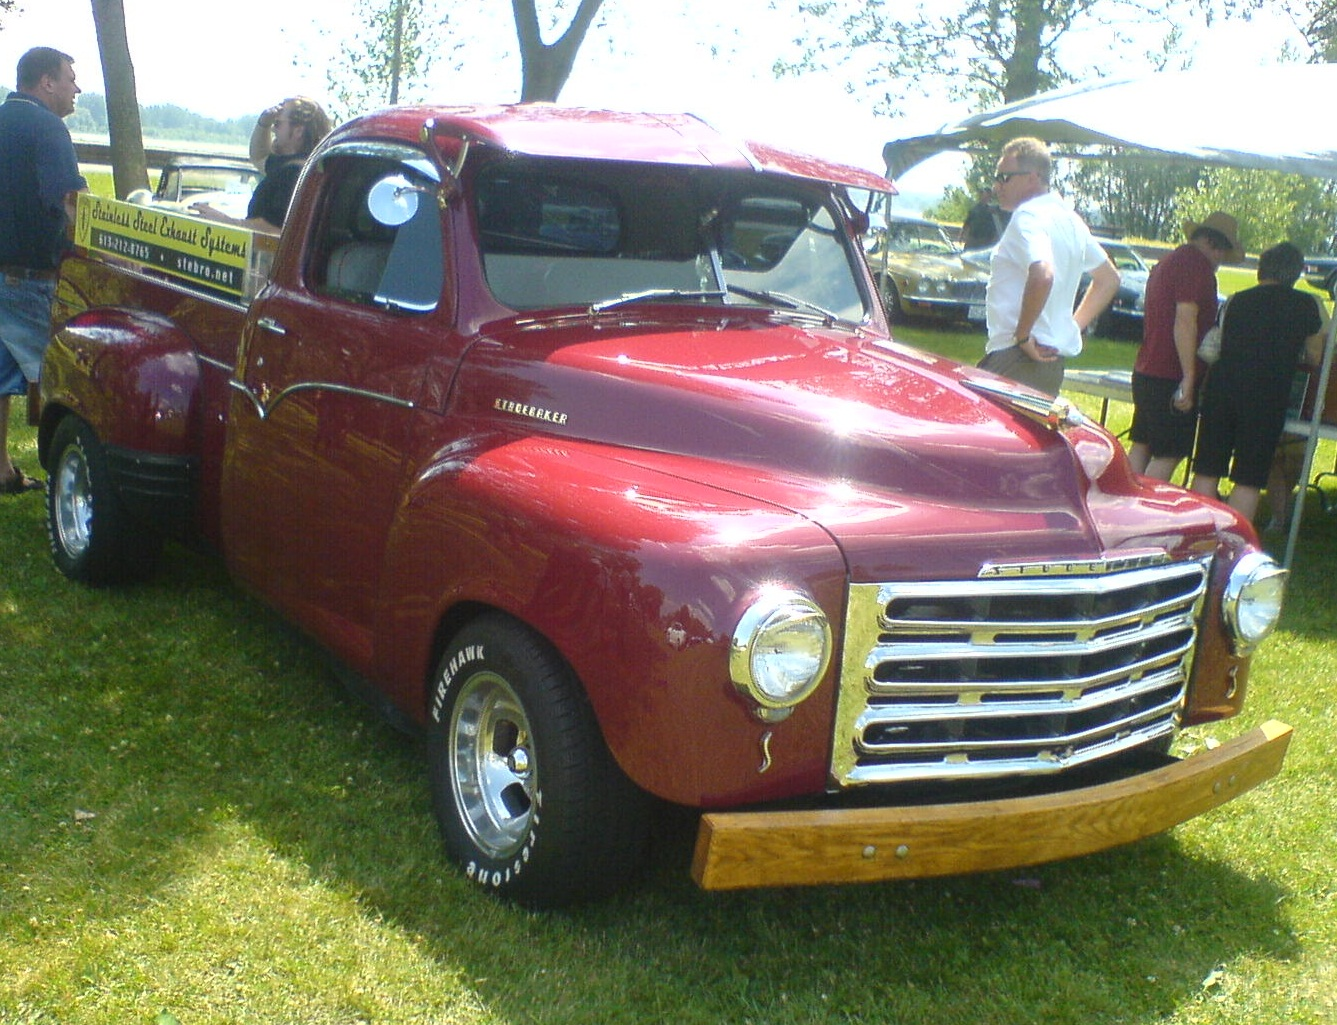 What Date Is The Ontario Car Show In